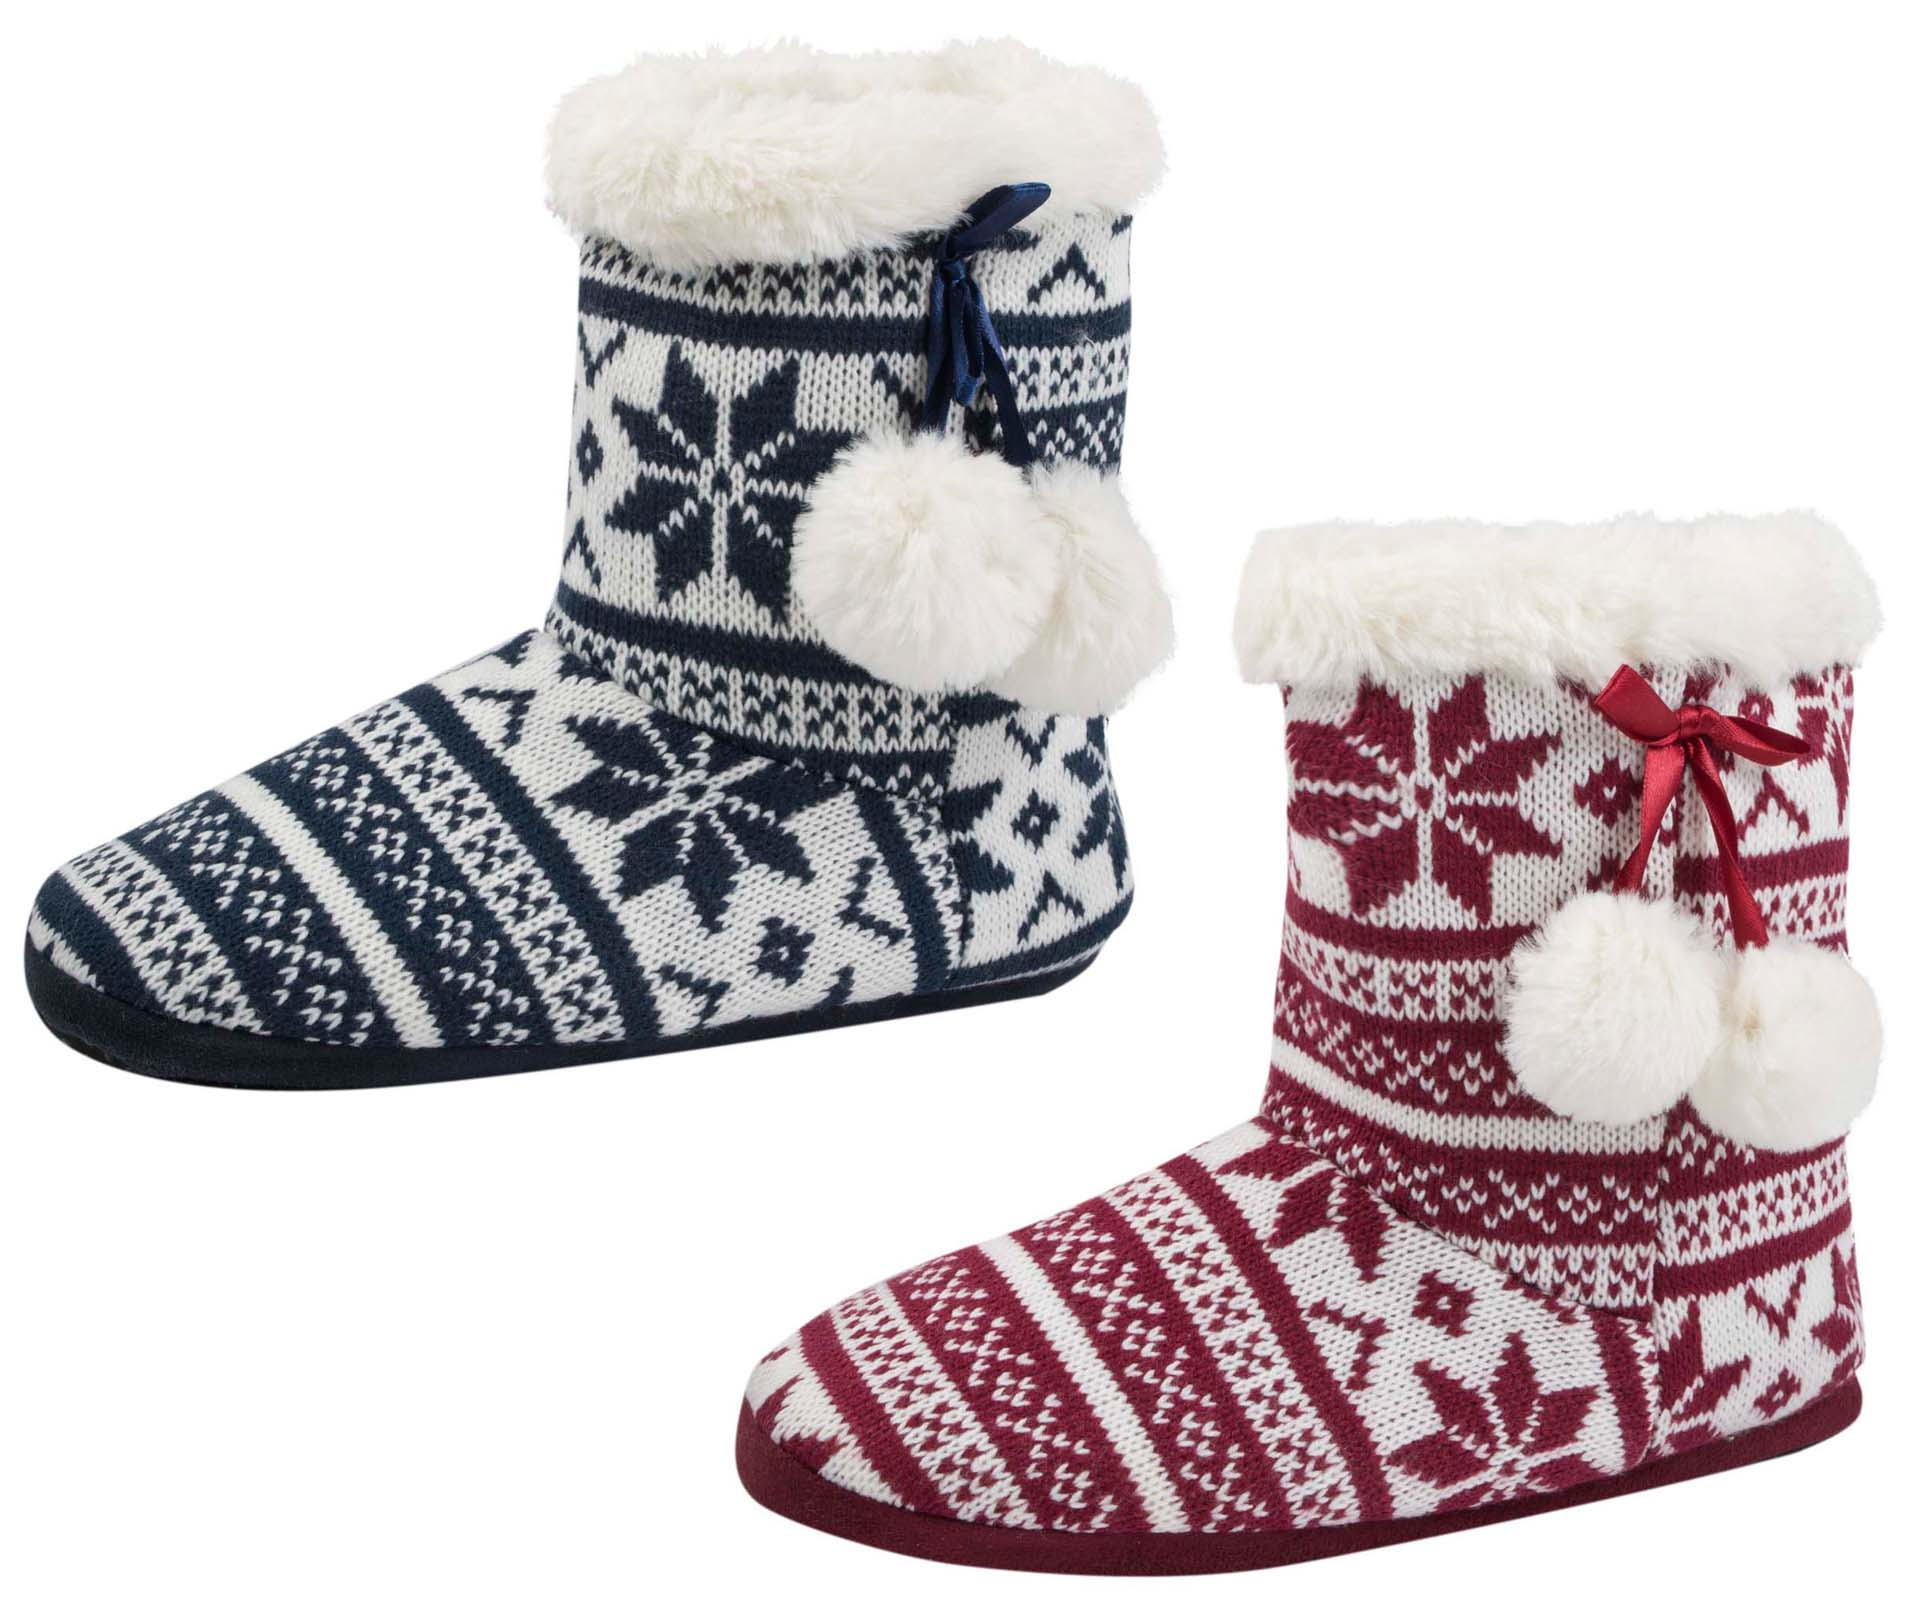 Christmas Boots For Girls.Details About Womens Fairisle Slipper Boots Knitted Winter Booties Ladies Girls Xmas Gift Size